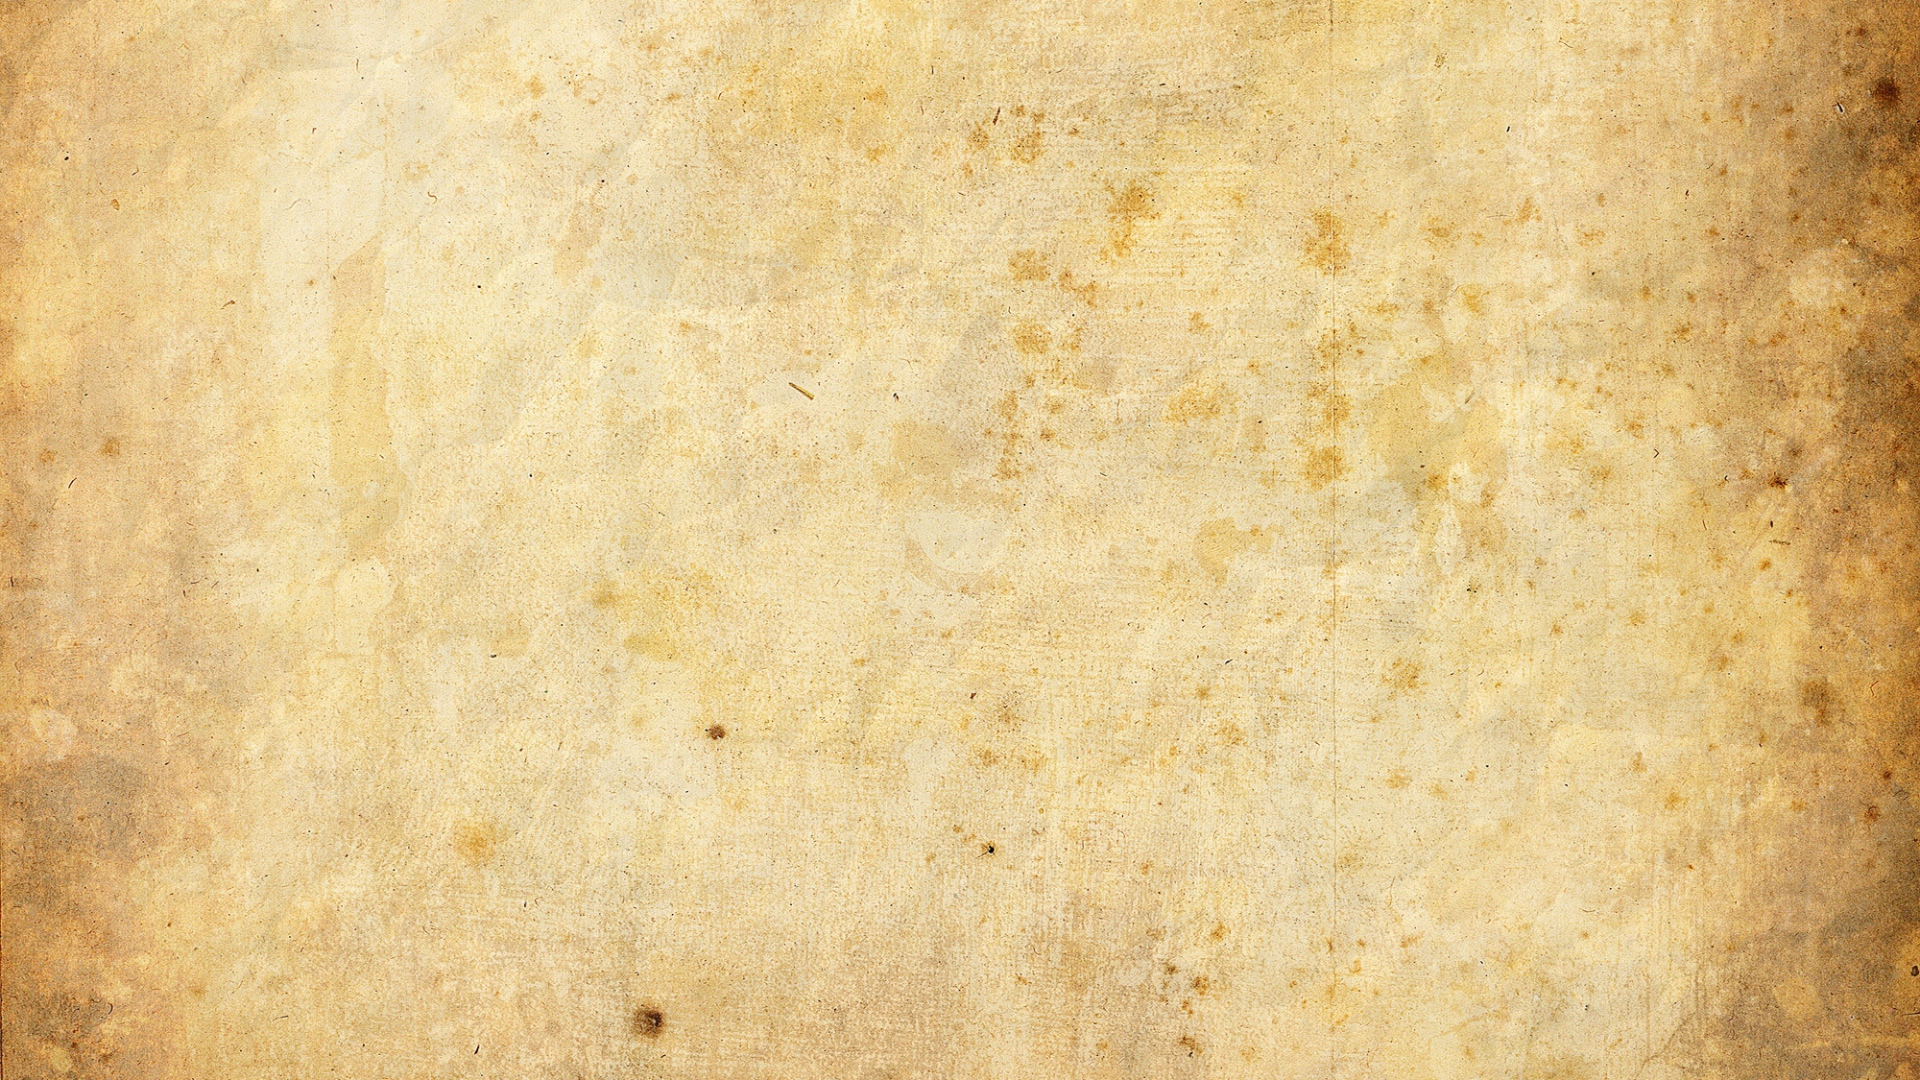 Download Wallpaper 1920x1080 texture, paper, stains, old Full HD ...